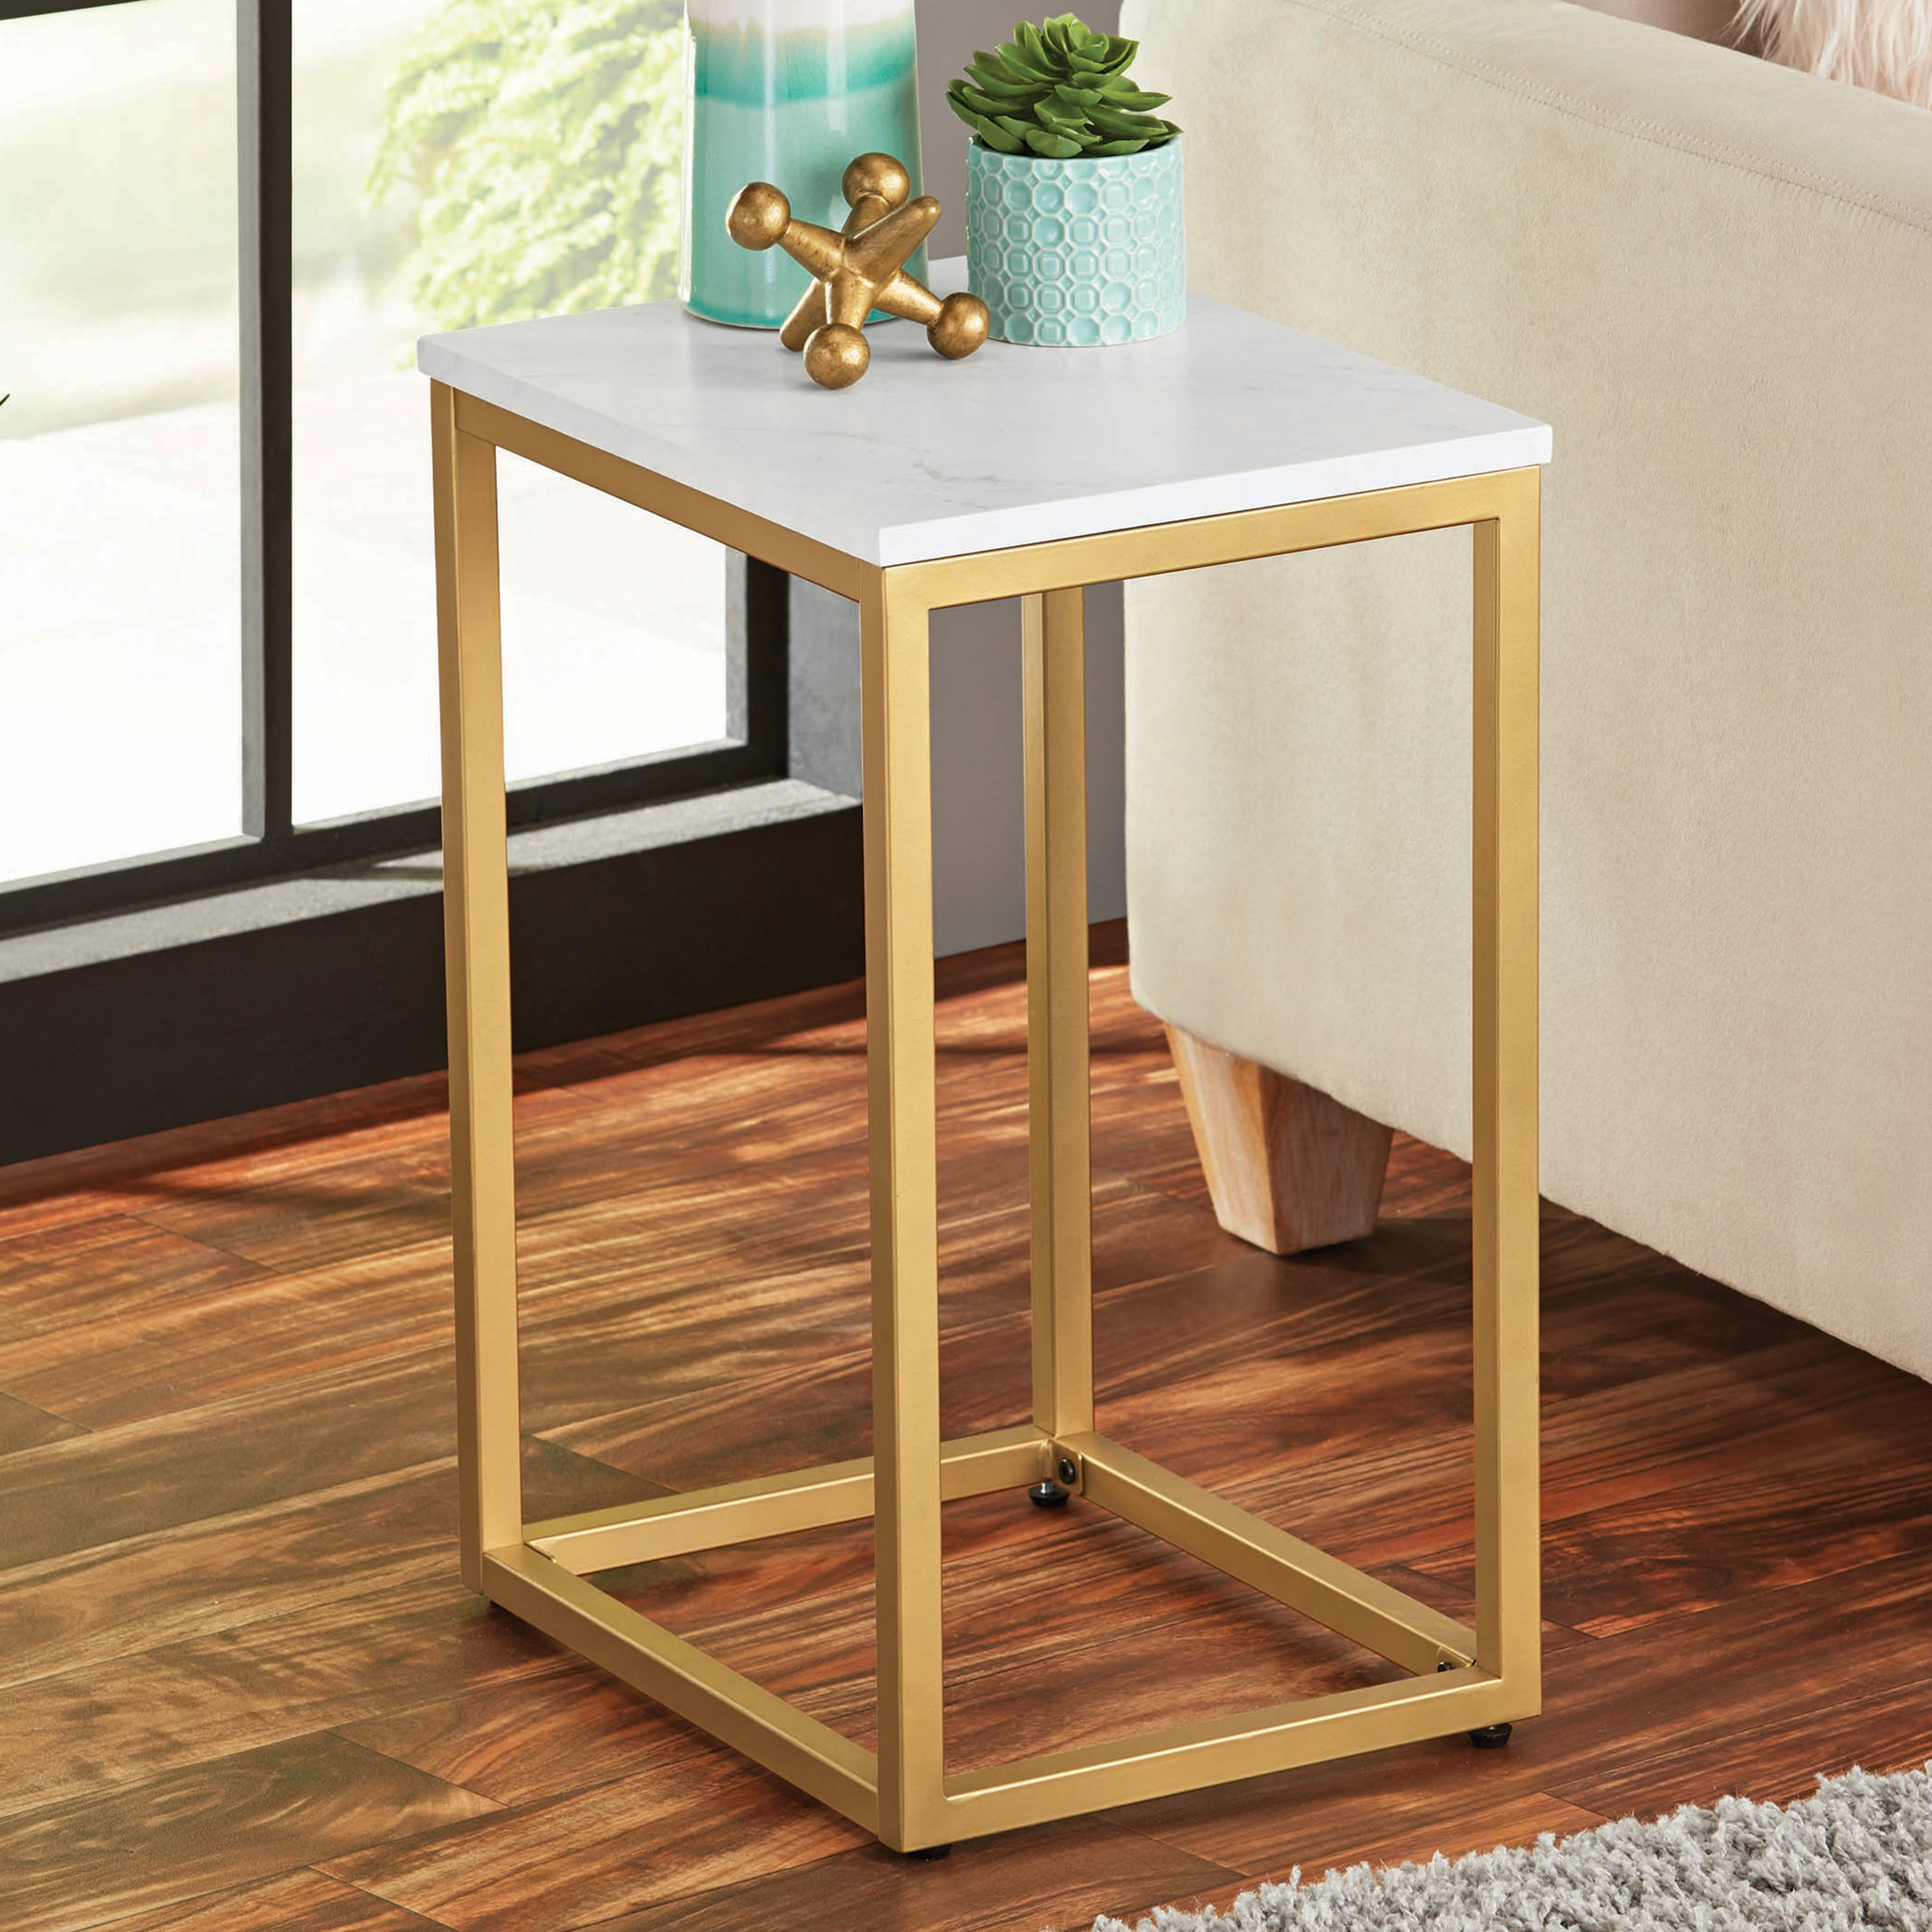 mainstays end table with space saving design and durable metal frame room essentials patio accent multiple finishes verizon free tablet small couch chairside drawers iron umbrella